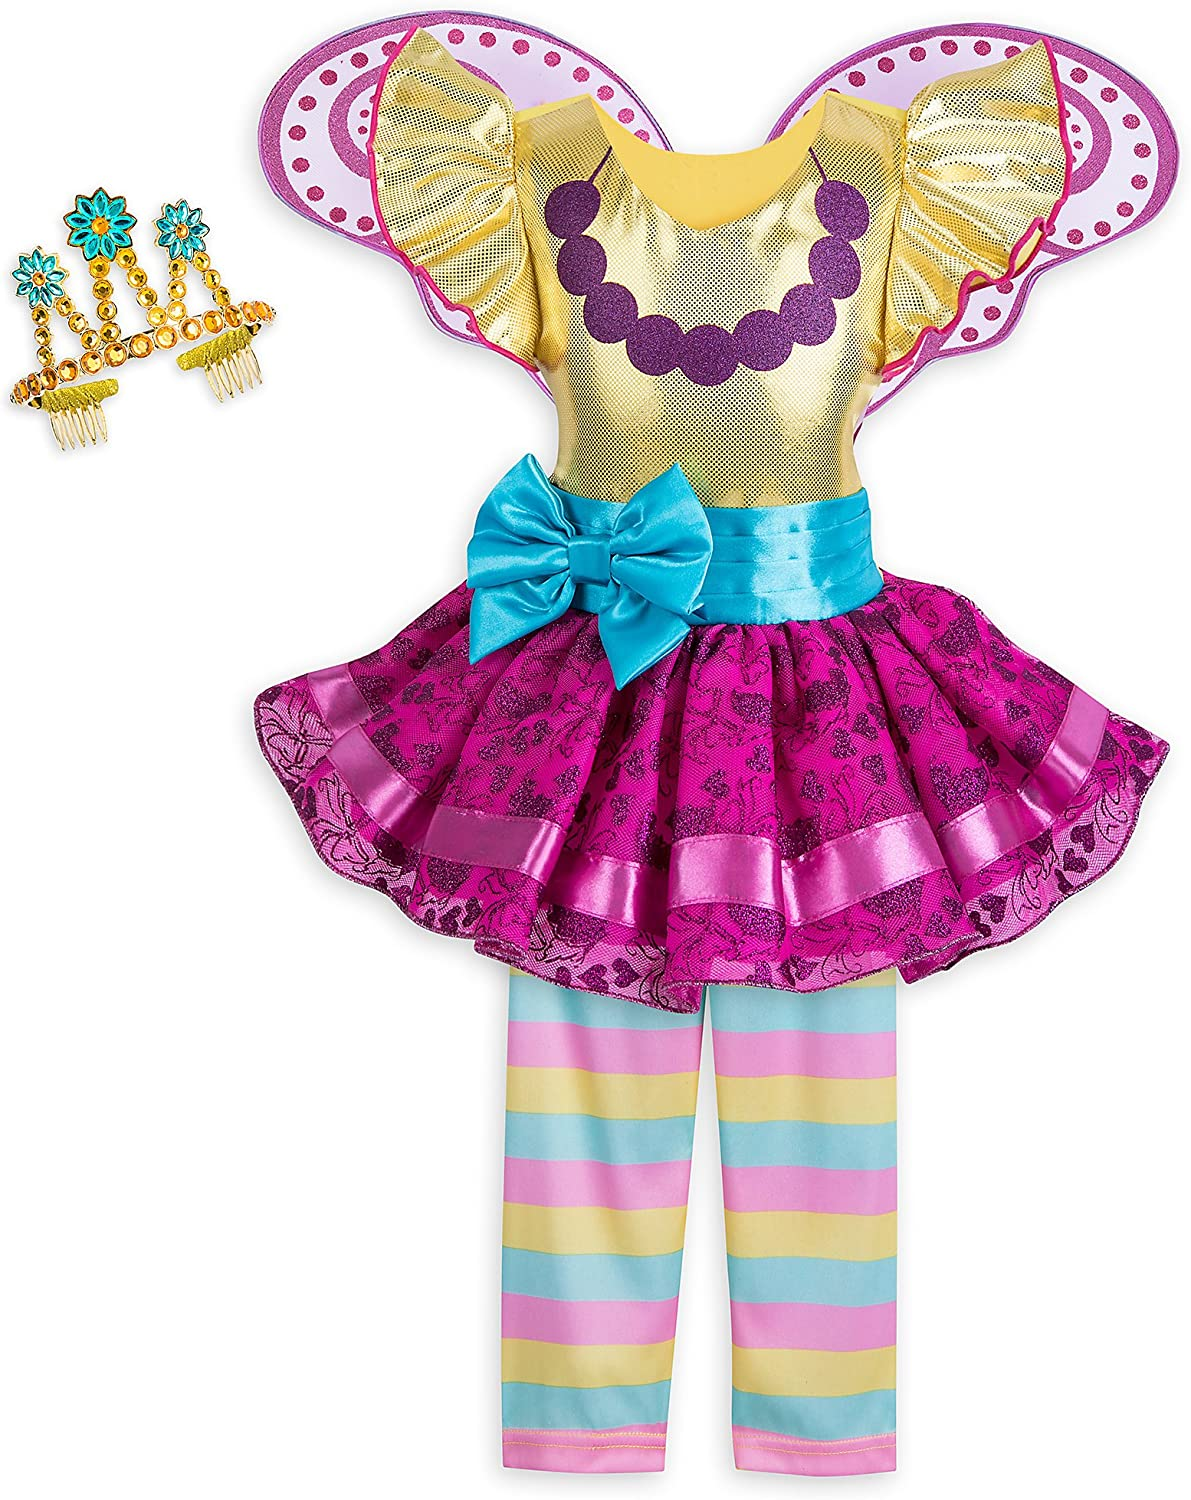 Amazon Com Disney Fancy Nancy Costume Set For Girls Size 9 10 Multi Clothing